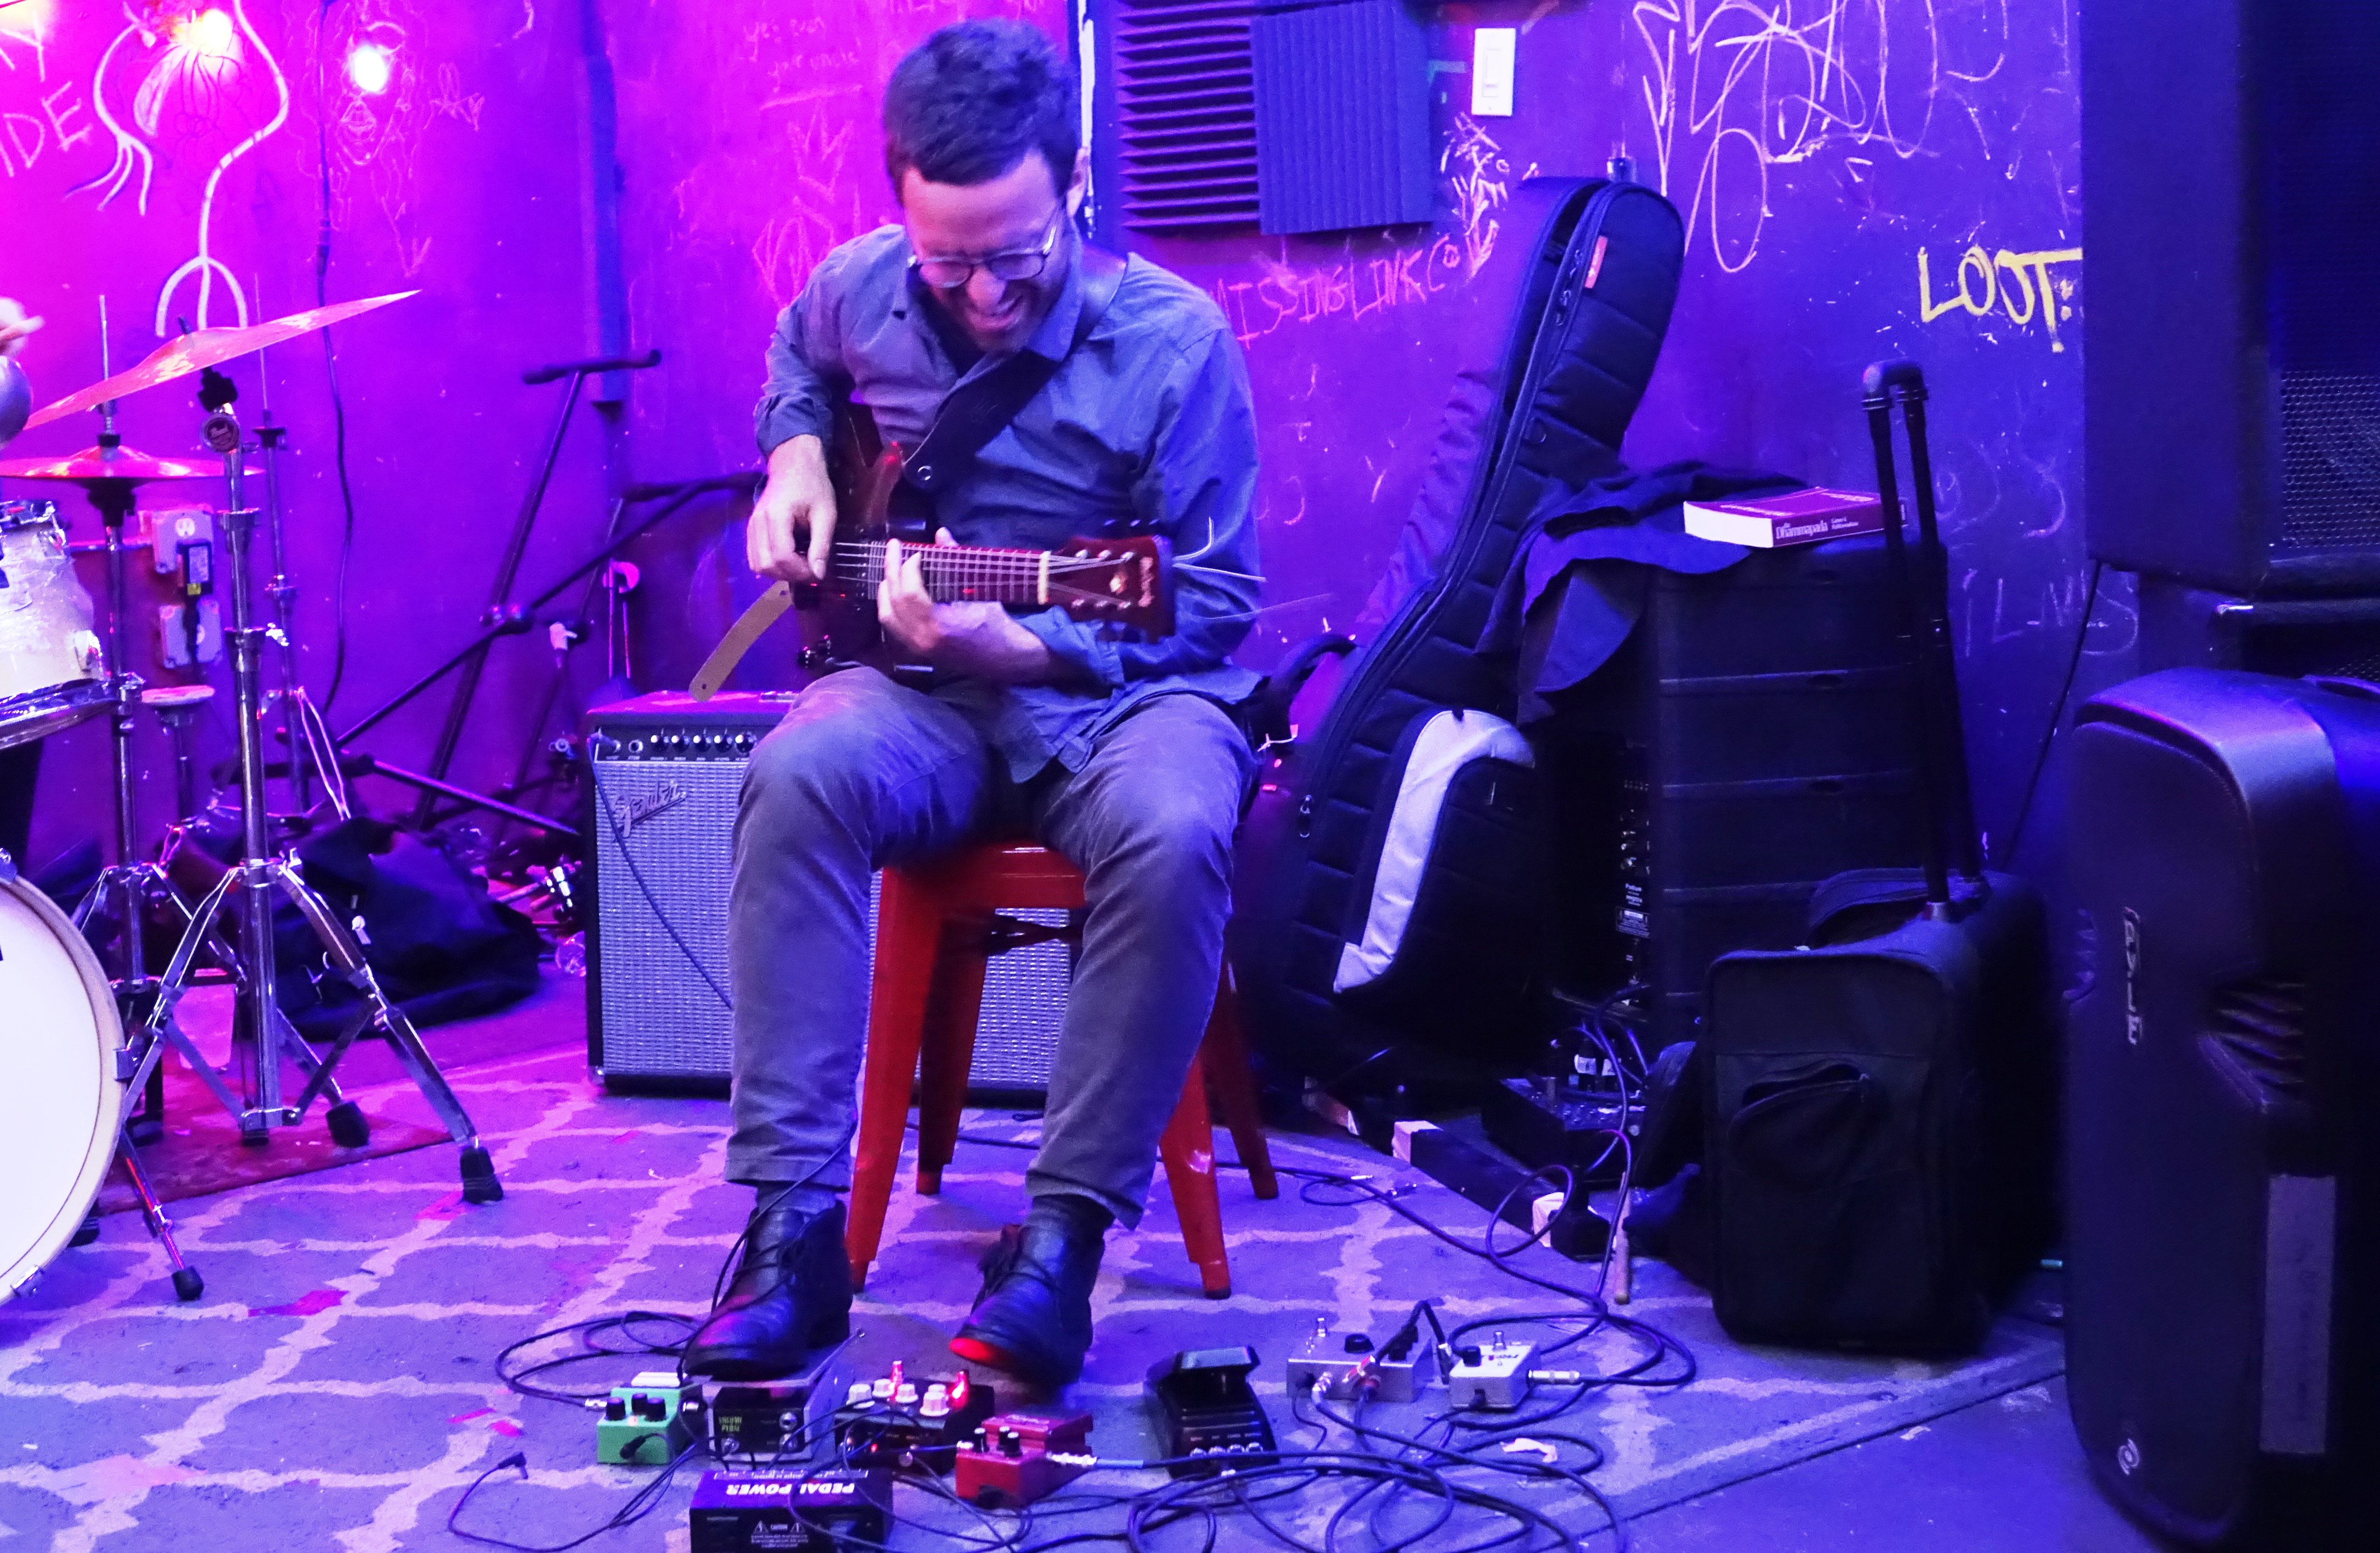 Todd Neufeld at the Bushwick Public House, Brooklyn in June 2019